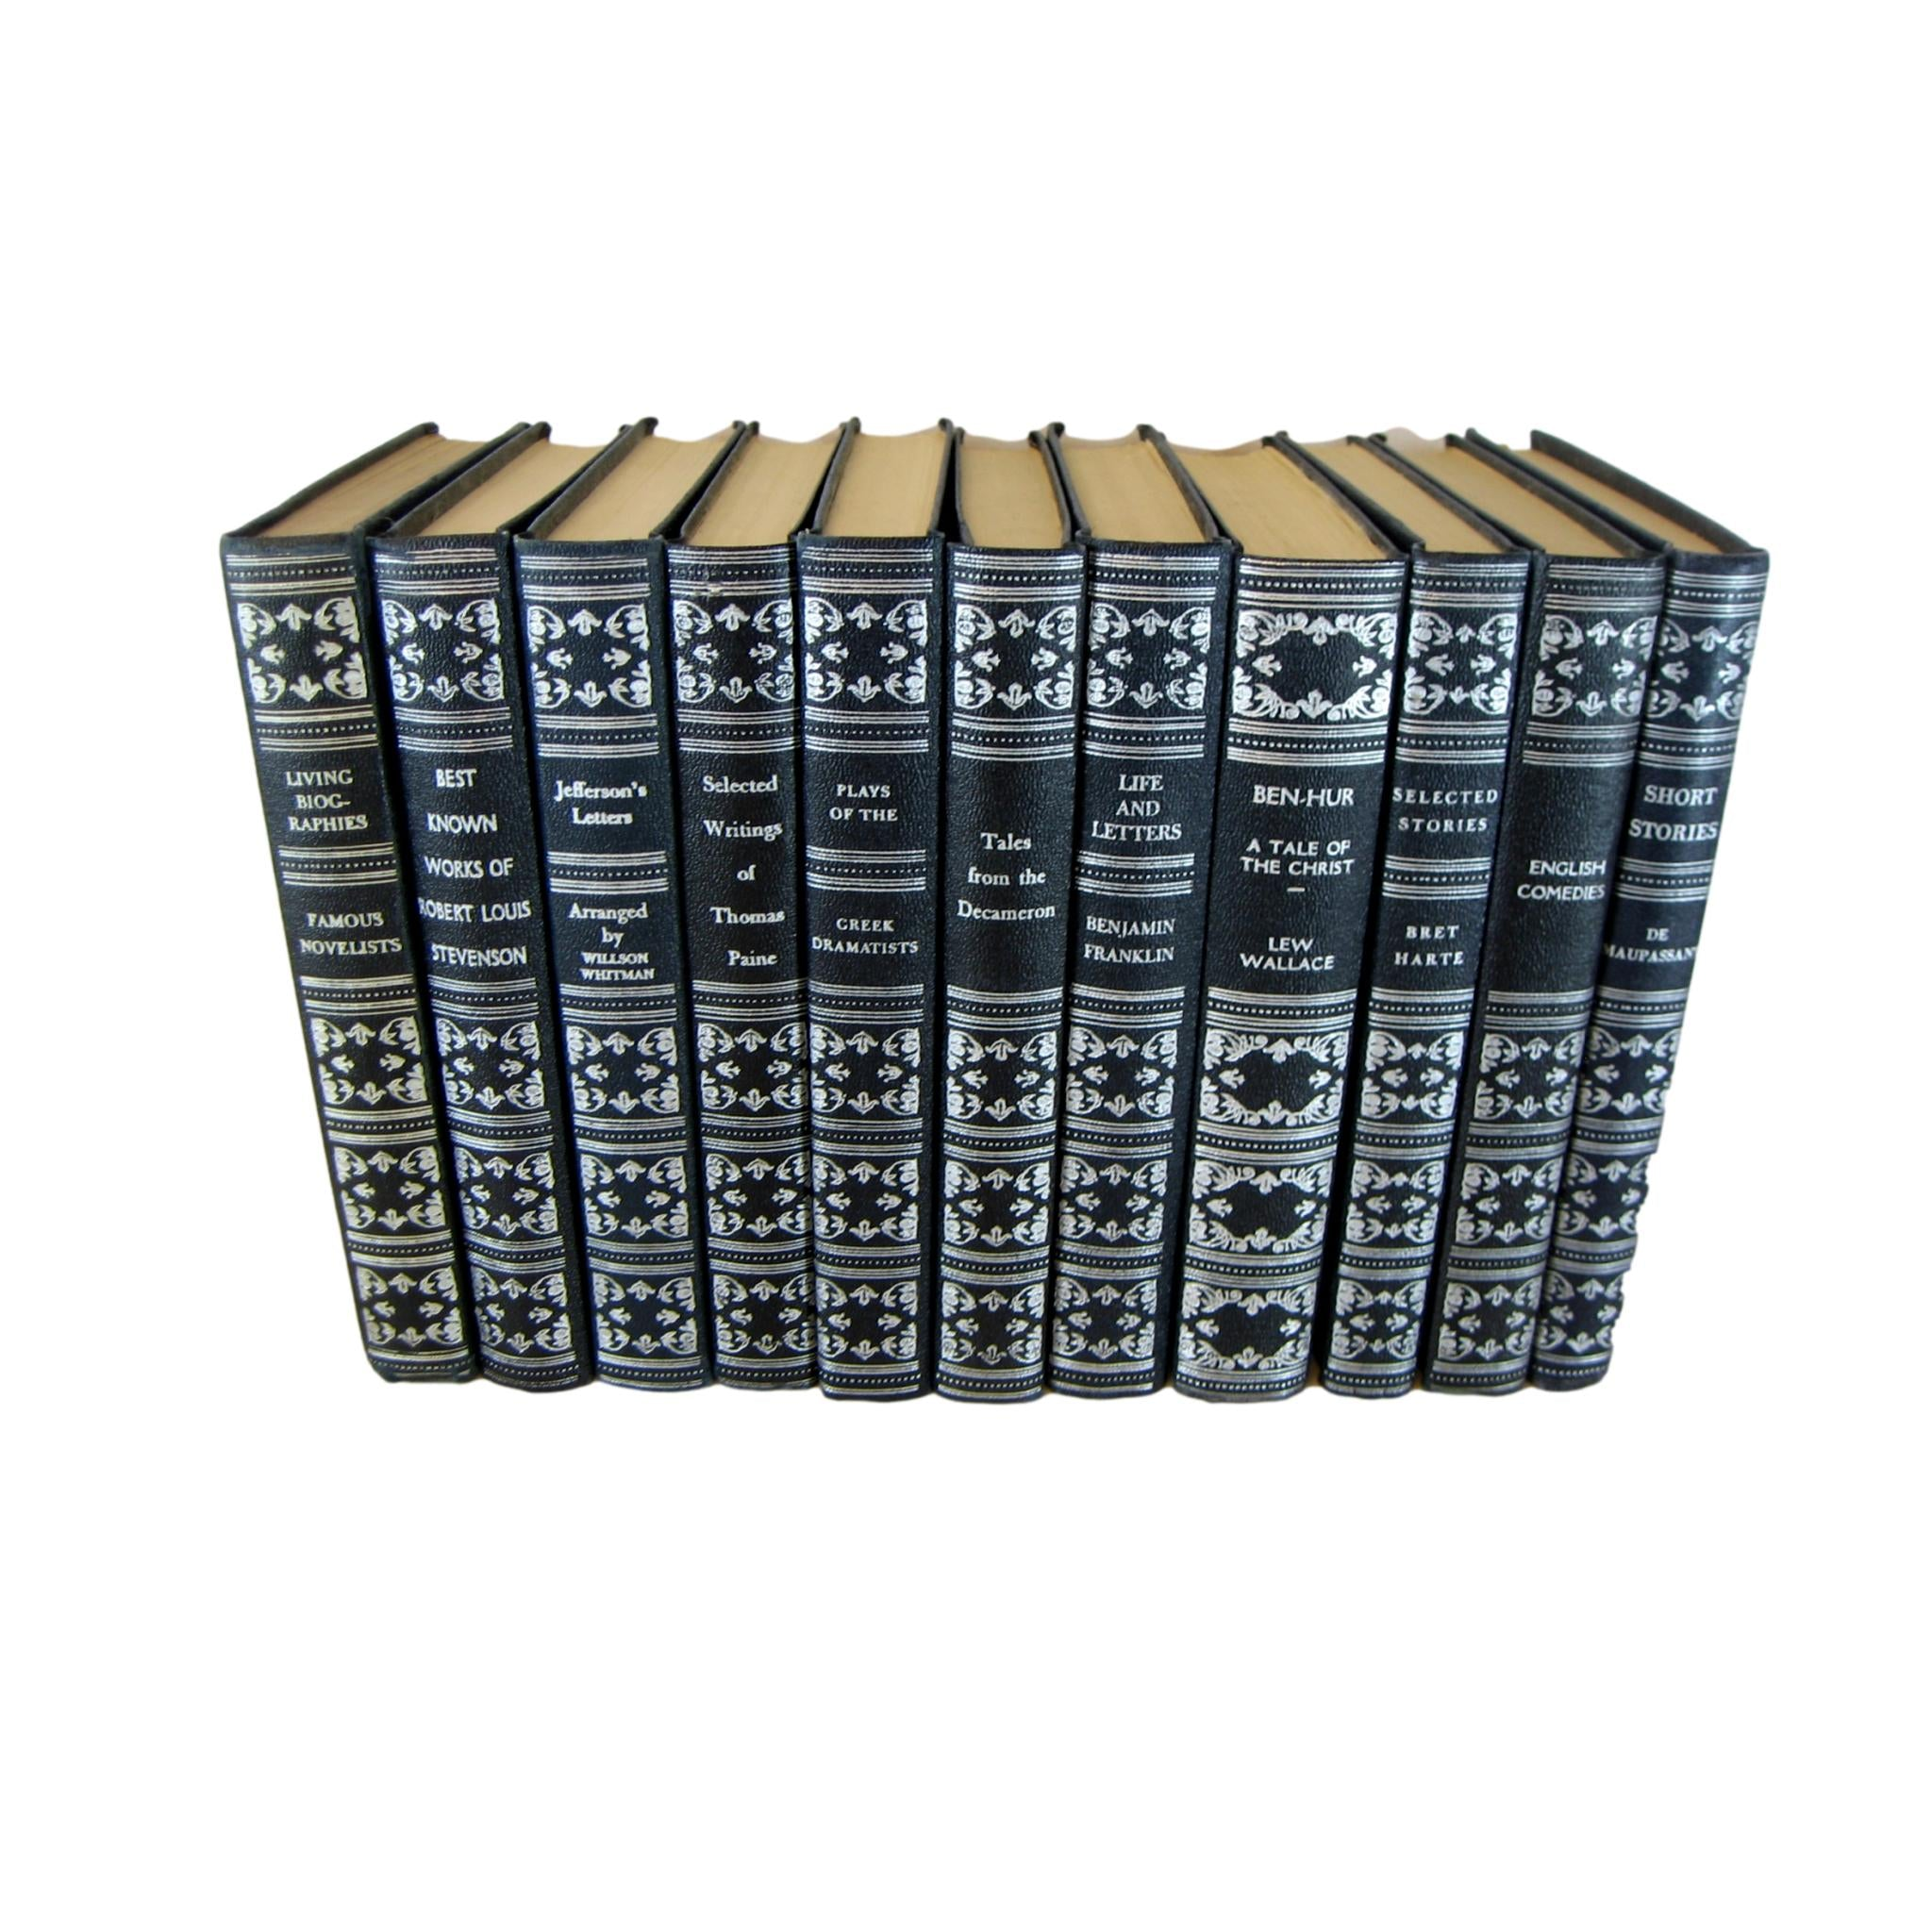 Blue  Decorative Books for Shelf Display and  Decor, S/5 - Decades of Vintage